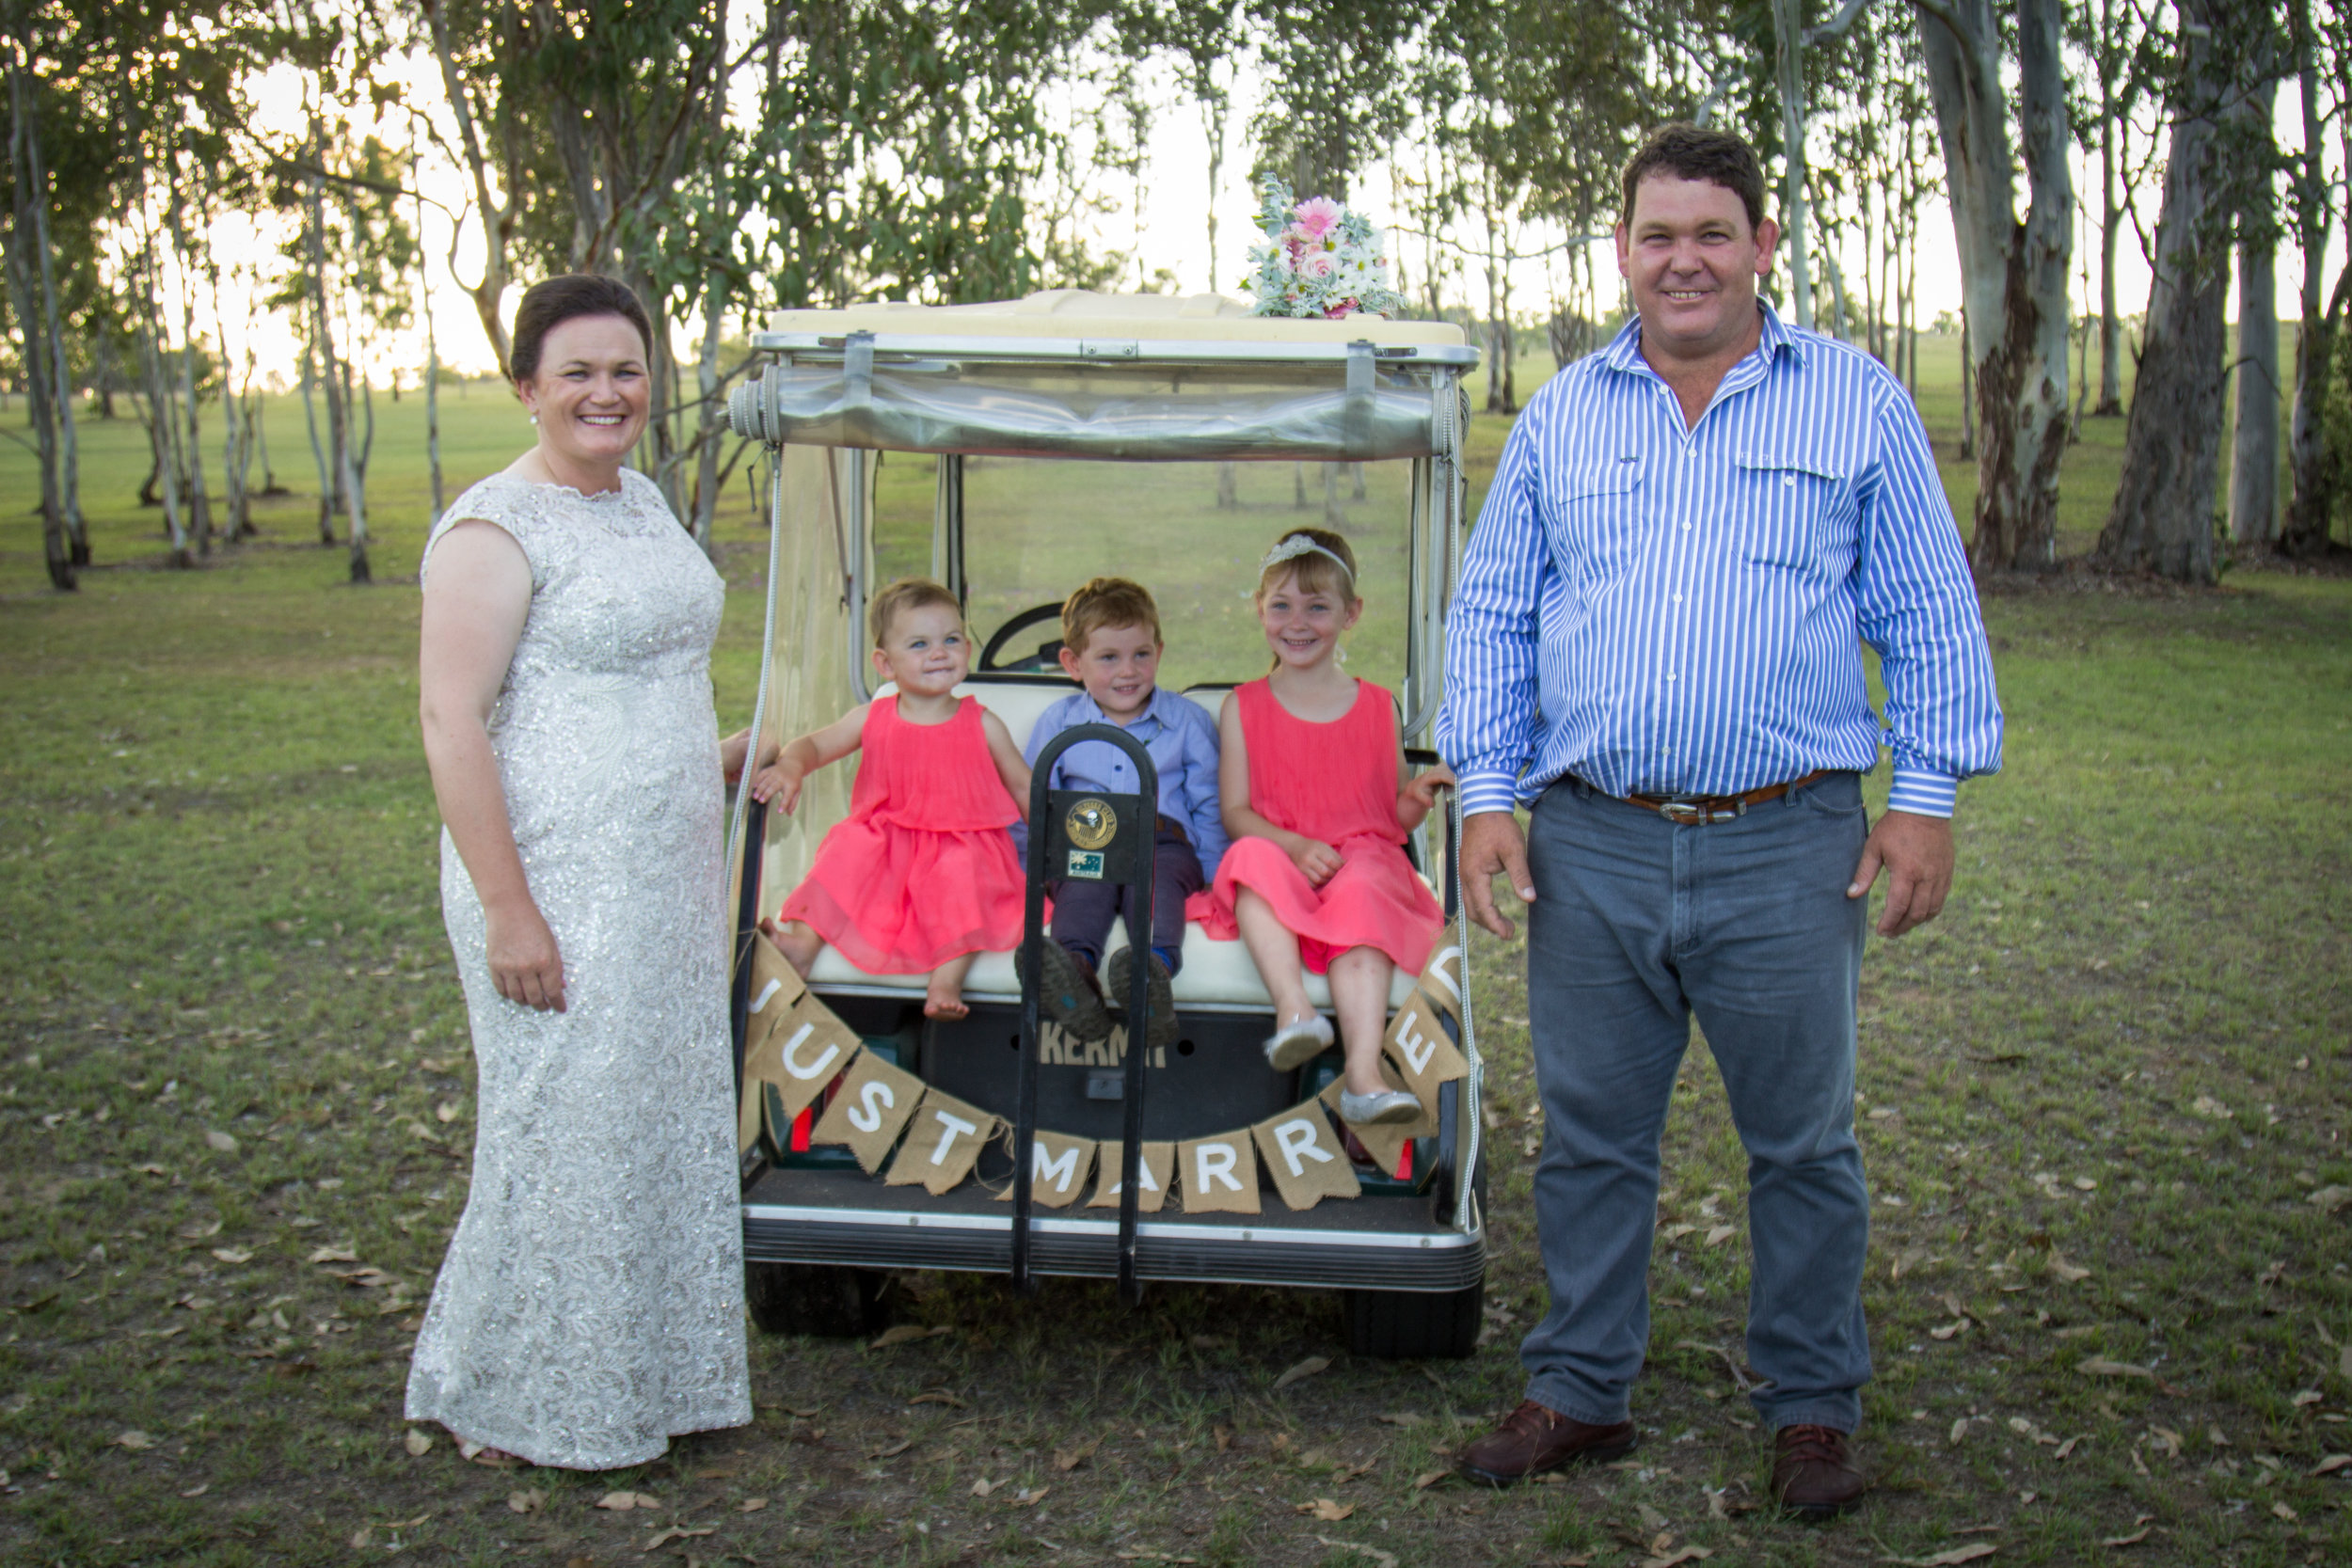 Lisa, Cameron and their children Jessie Jane, Buckley and Bonnie married in 2016 at Boondooma Homestead, image supplied, photographer:Lynette Vicary.